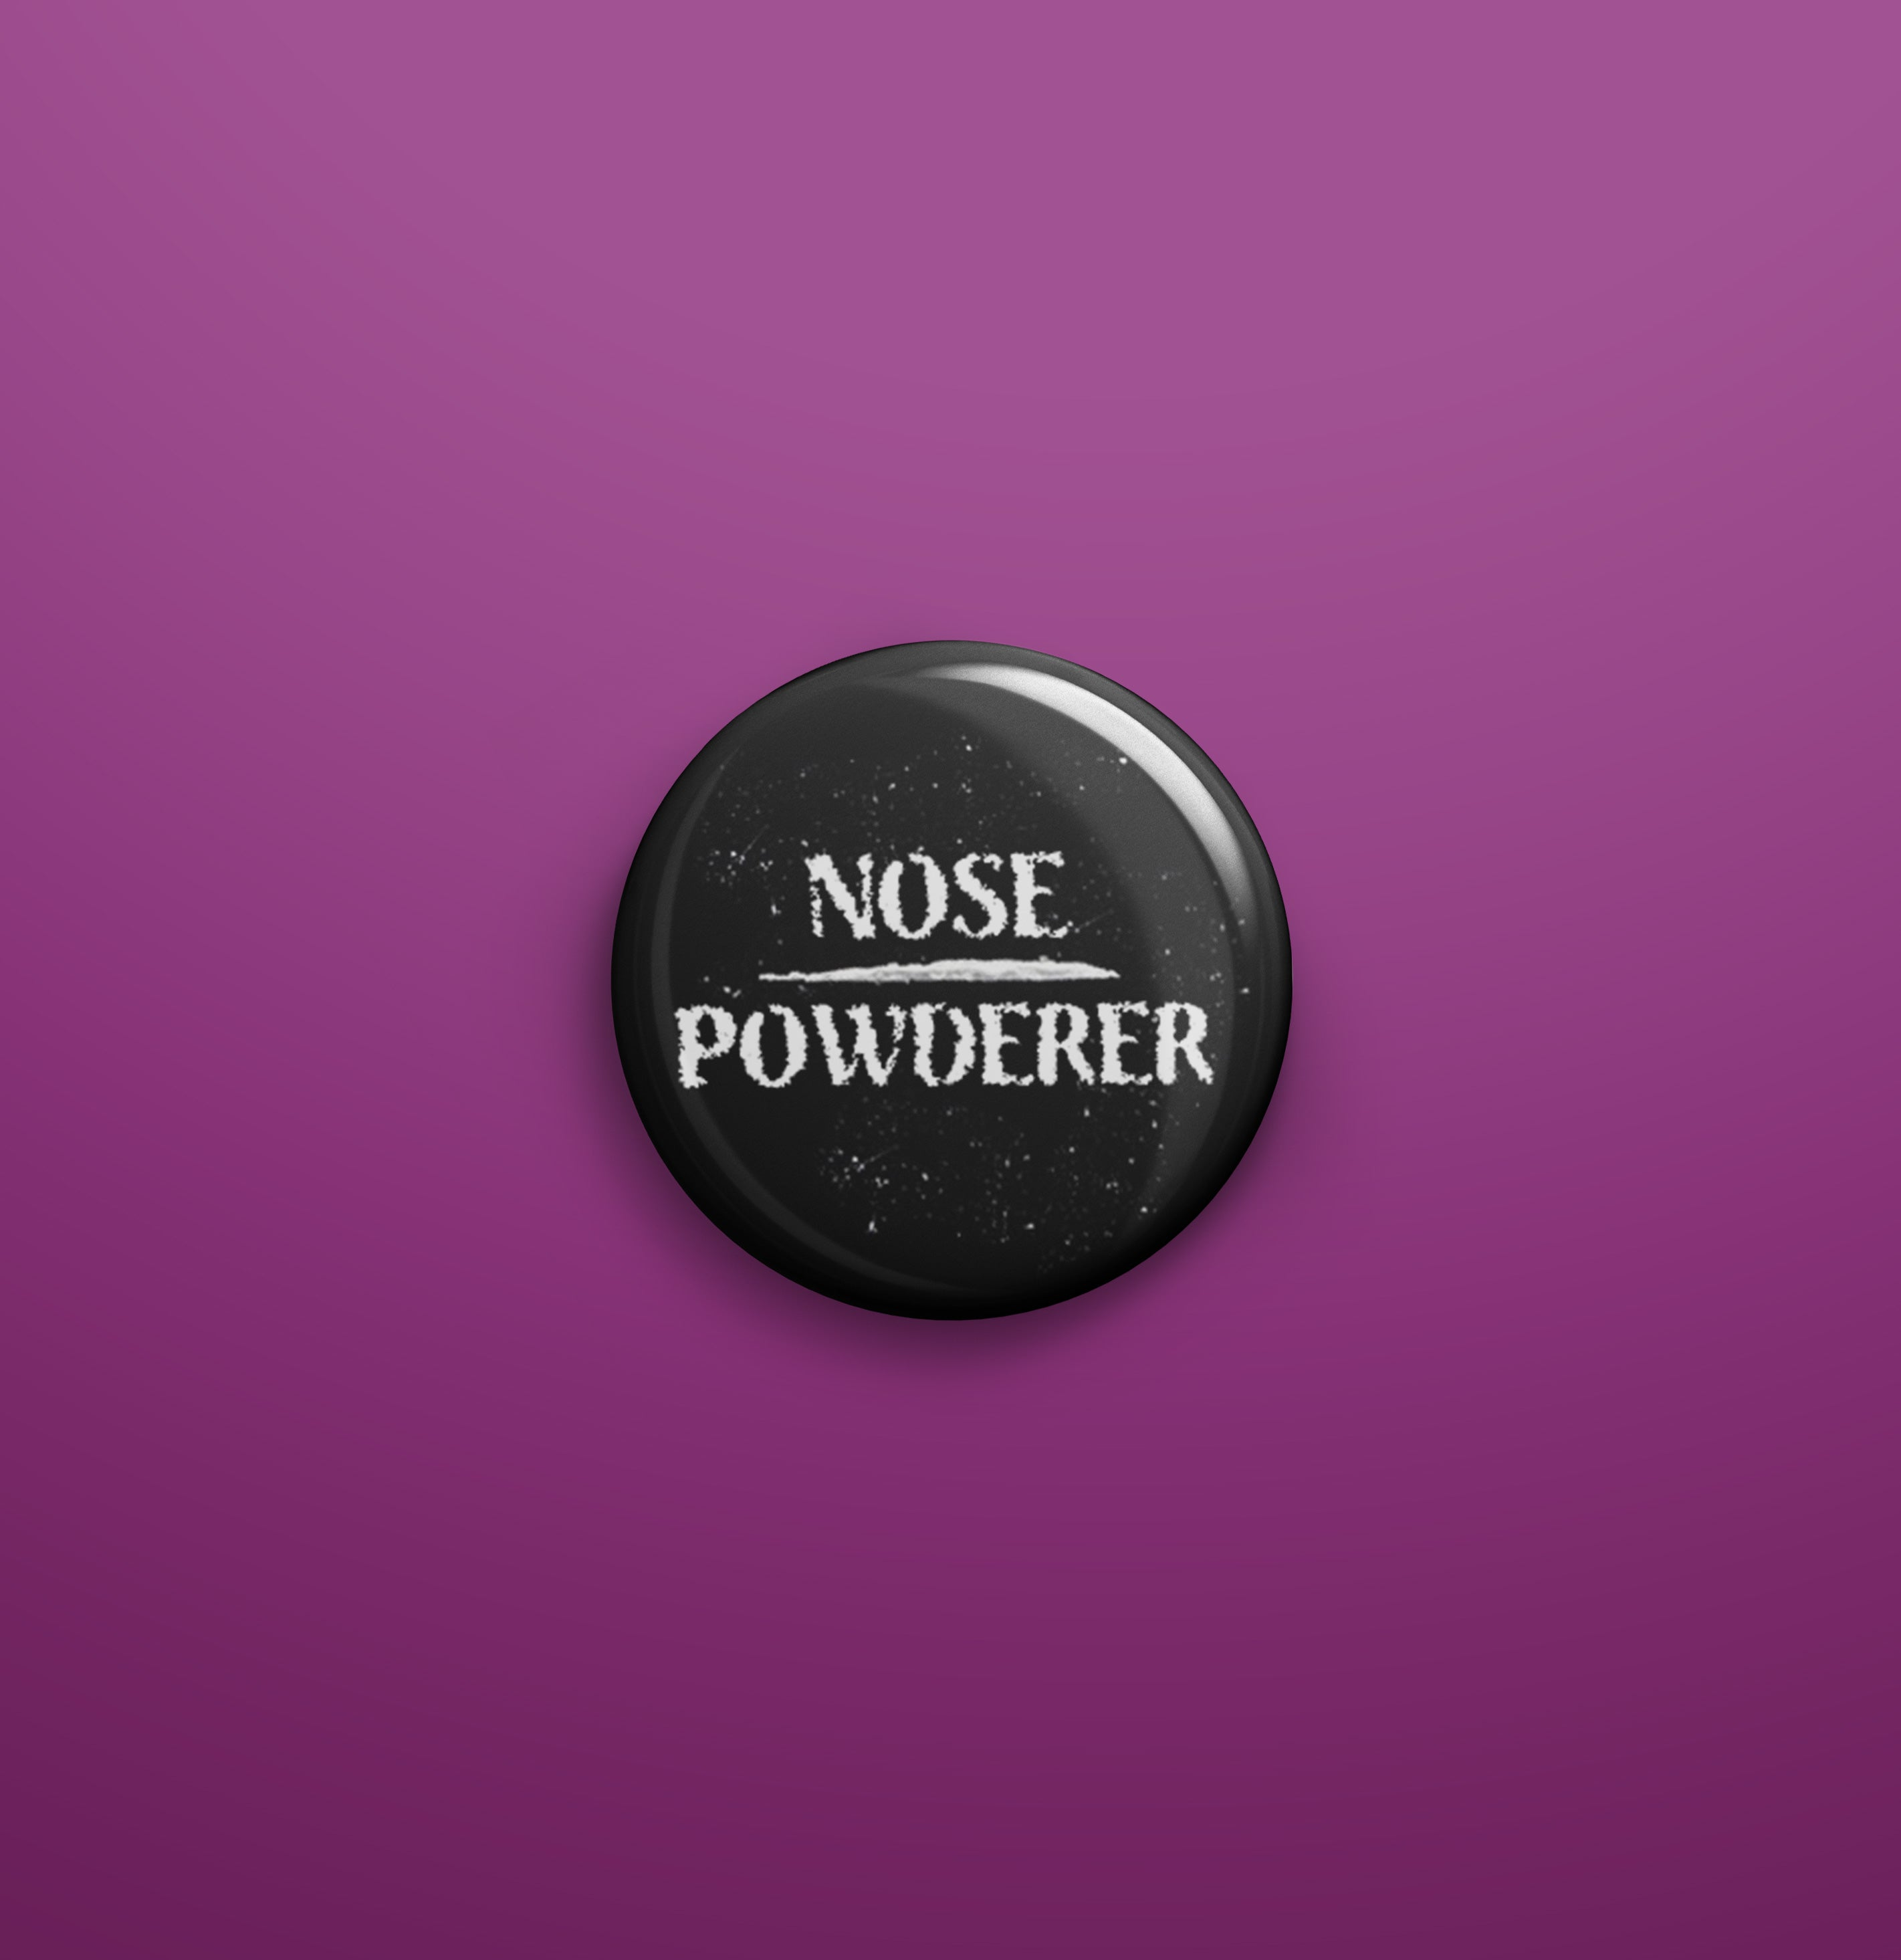 Nose Powderer